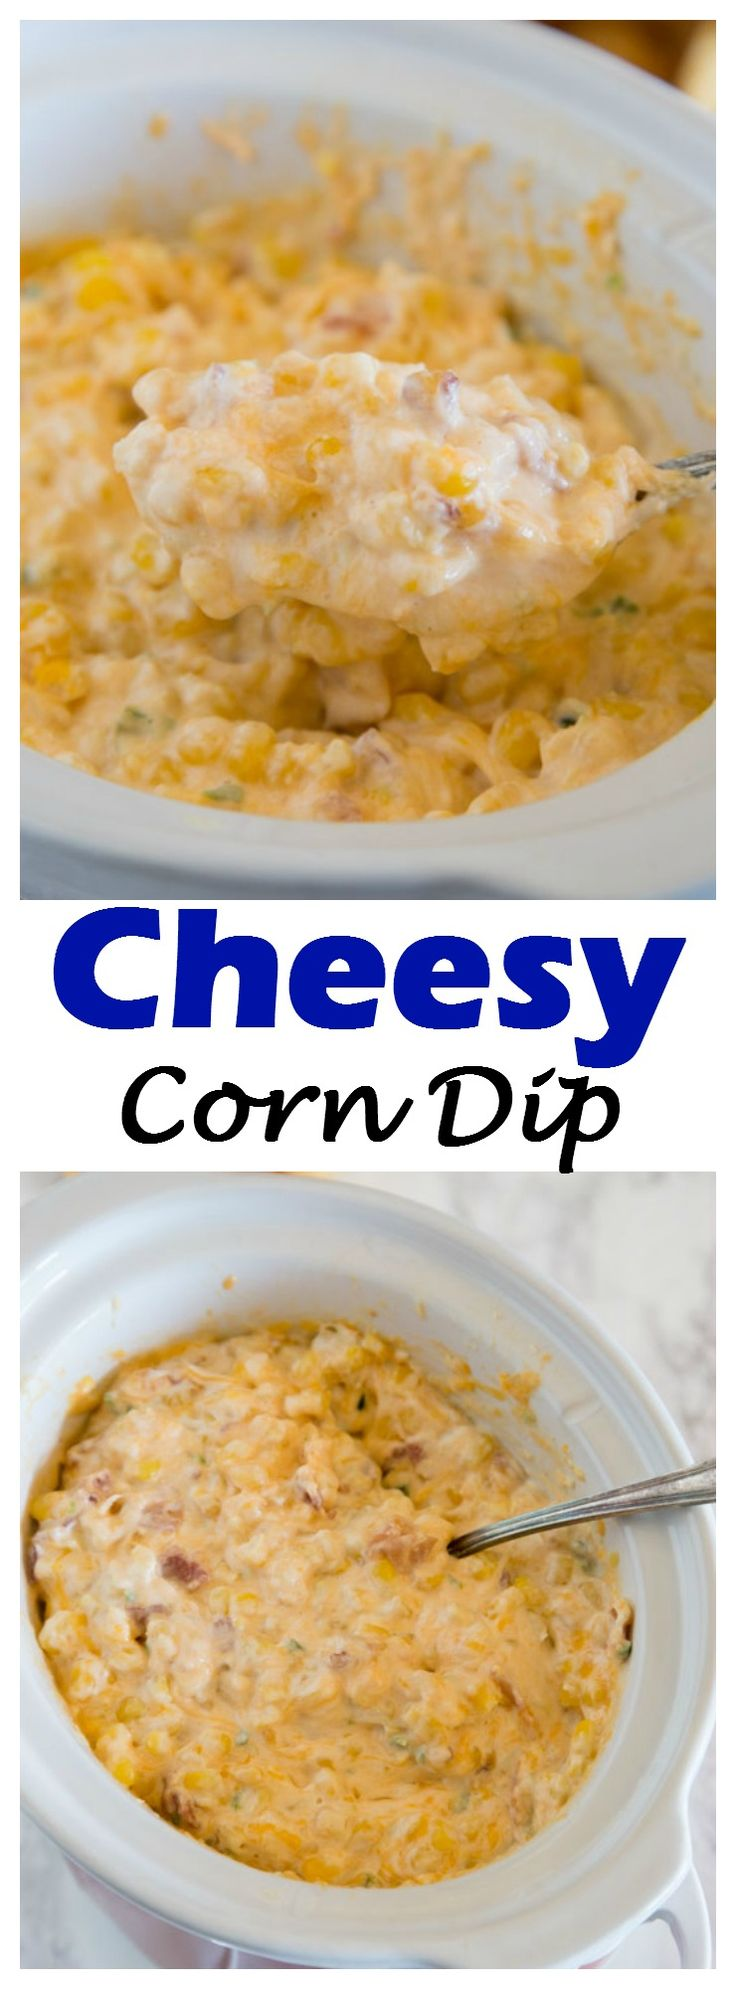 CHEESY CORN DIP – A DELICIOUS HOT DIP WITH JALAPENO, CORN, BACON, AND PLENTY OF CHEESE! COMES TOGETHER IN MINUTES, AND PERFECT FOR SNACKING OR ENTERTAINING.